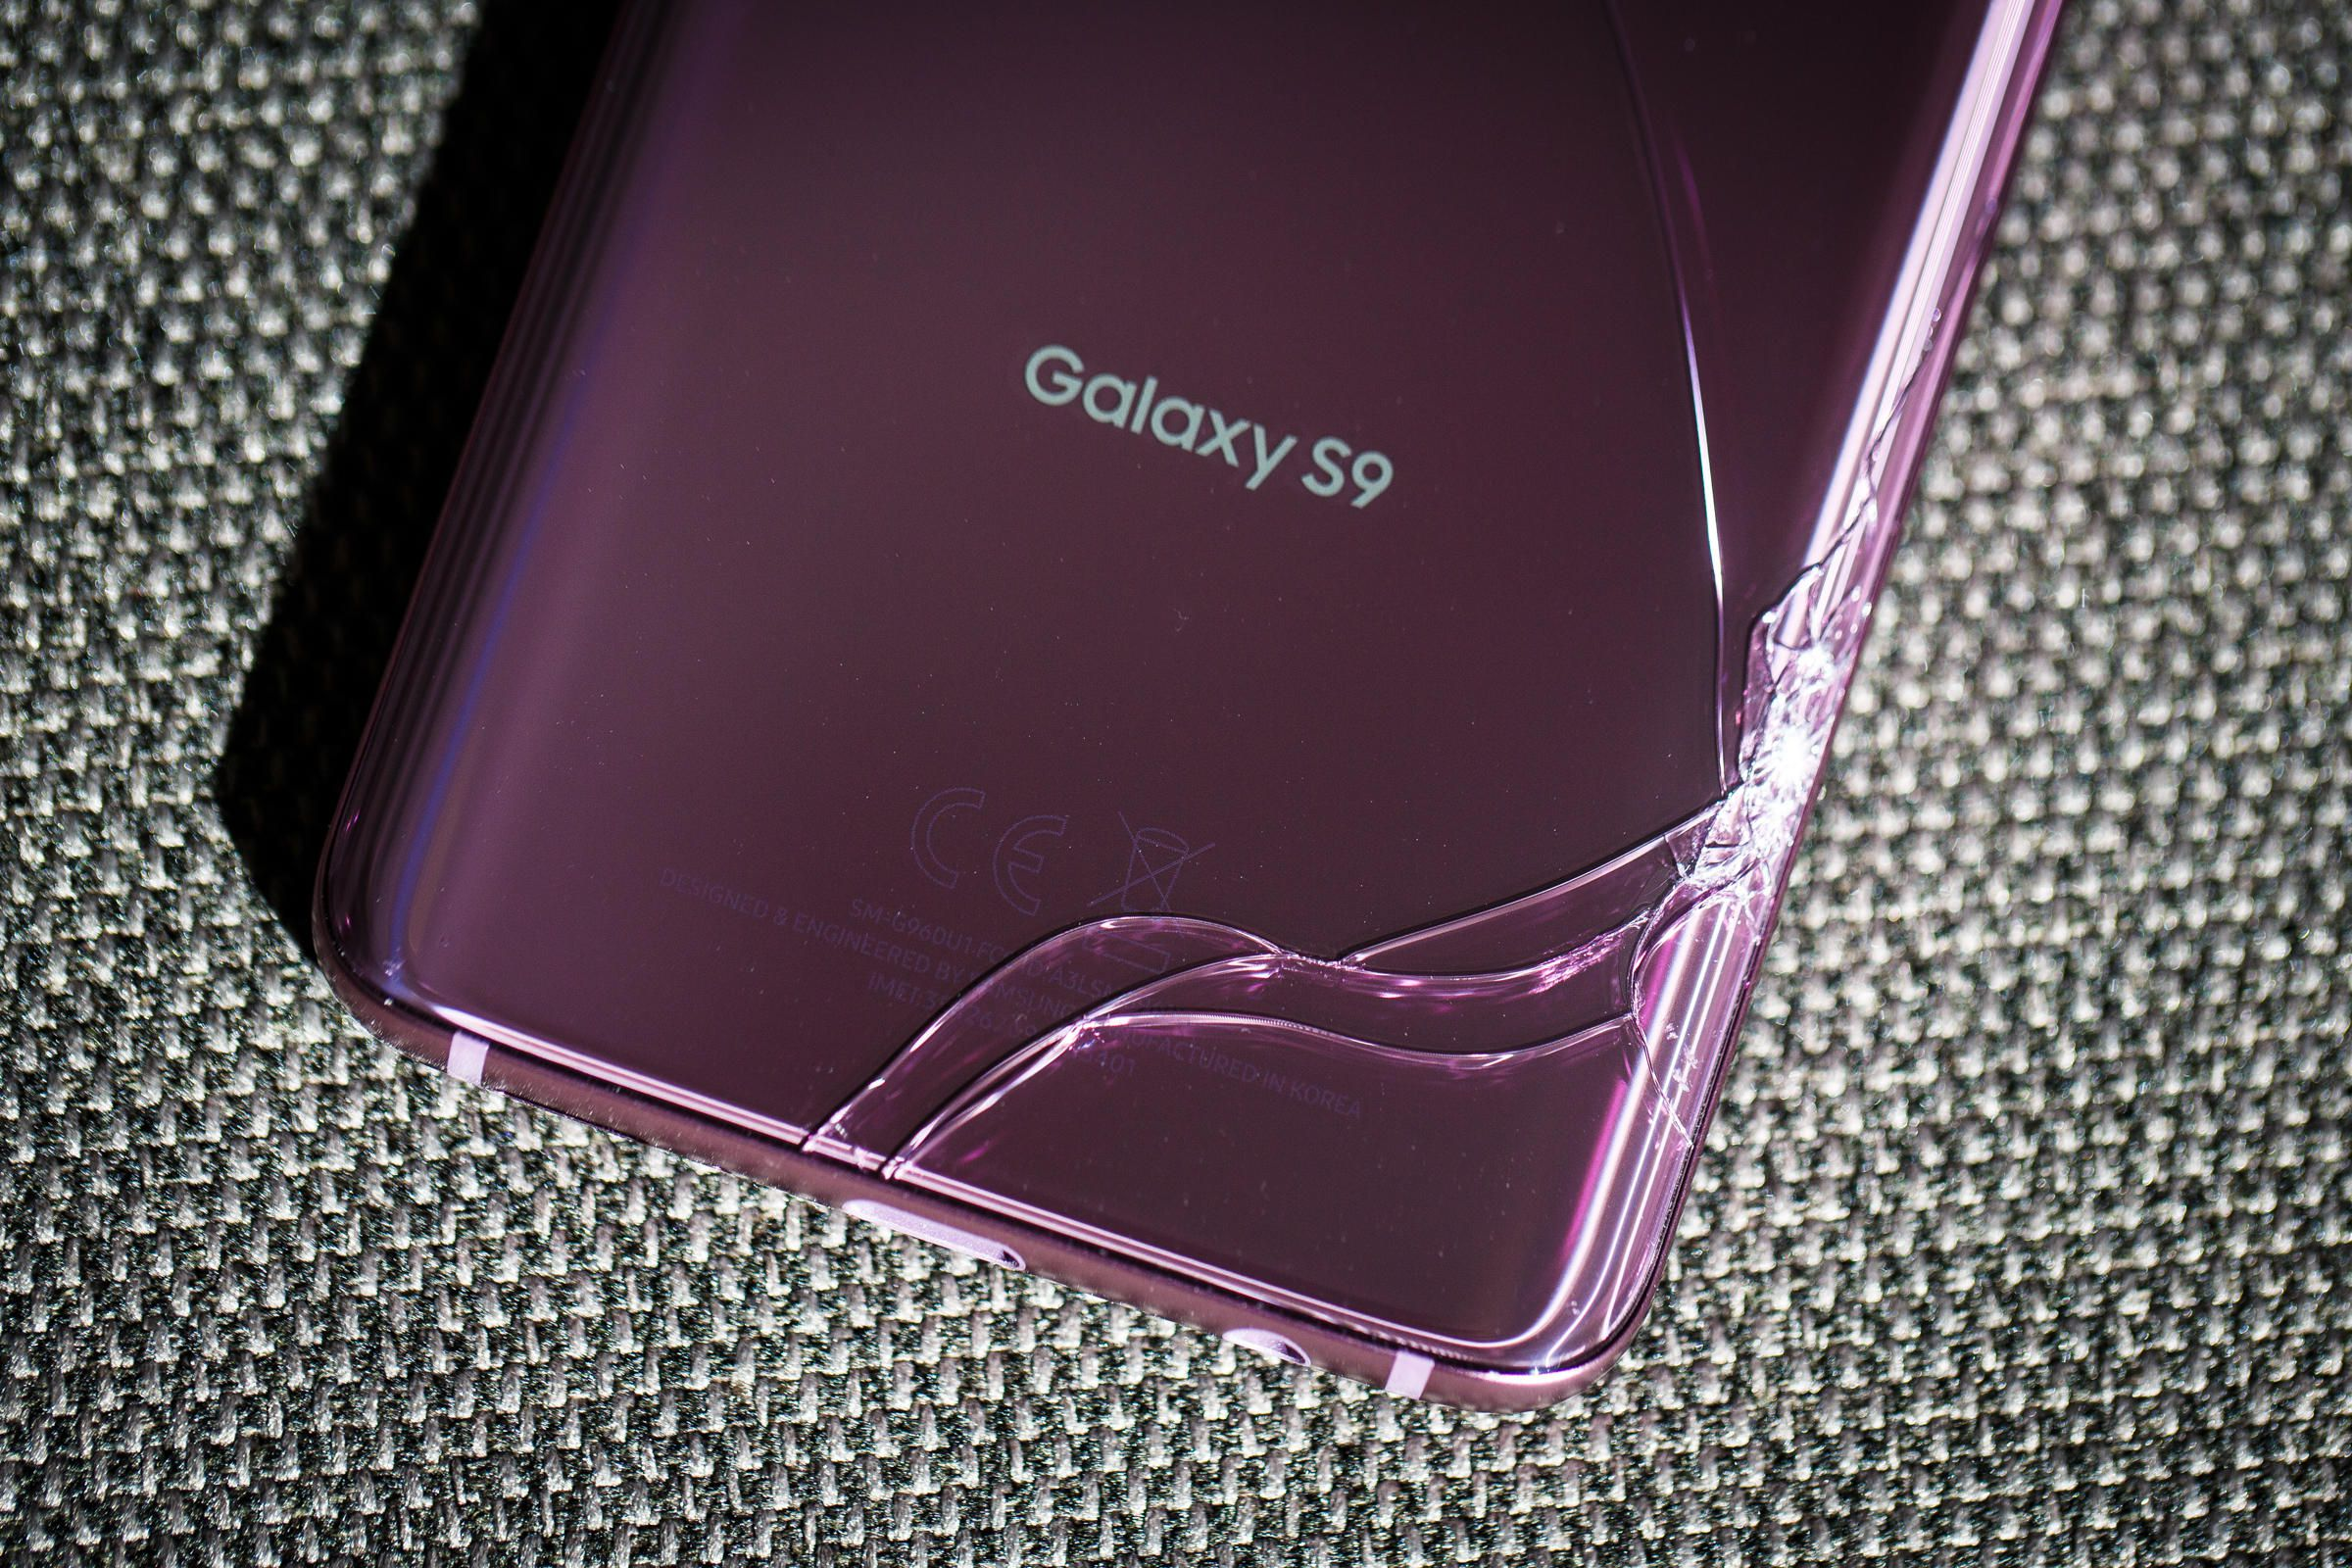 Here S How Much It Costs To Fix Broken Glass On The Samsung Galaxy S9 And S9 Plus Deteched